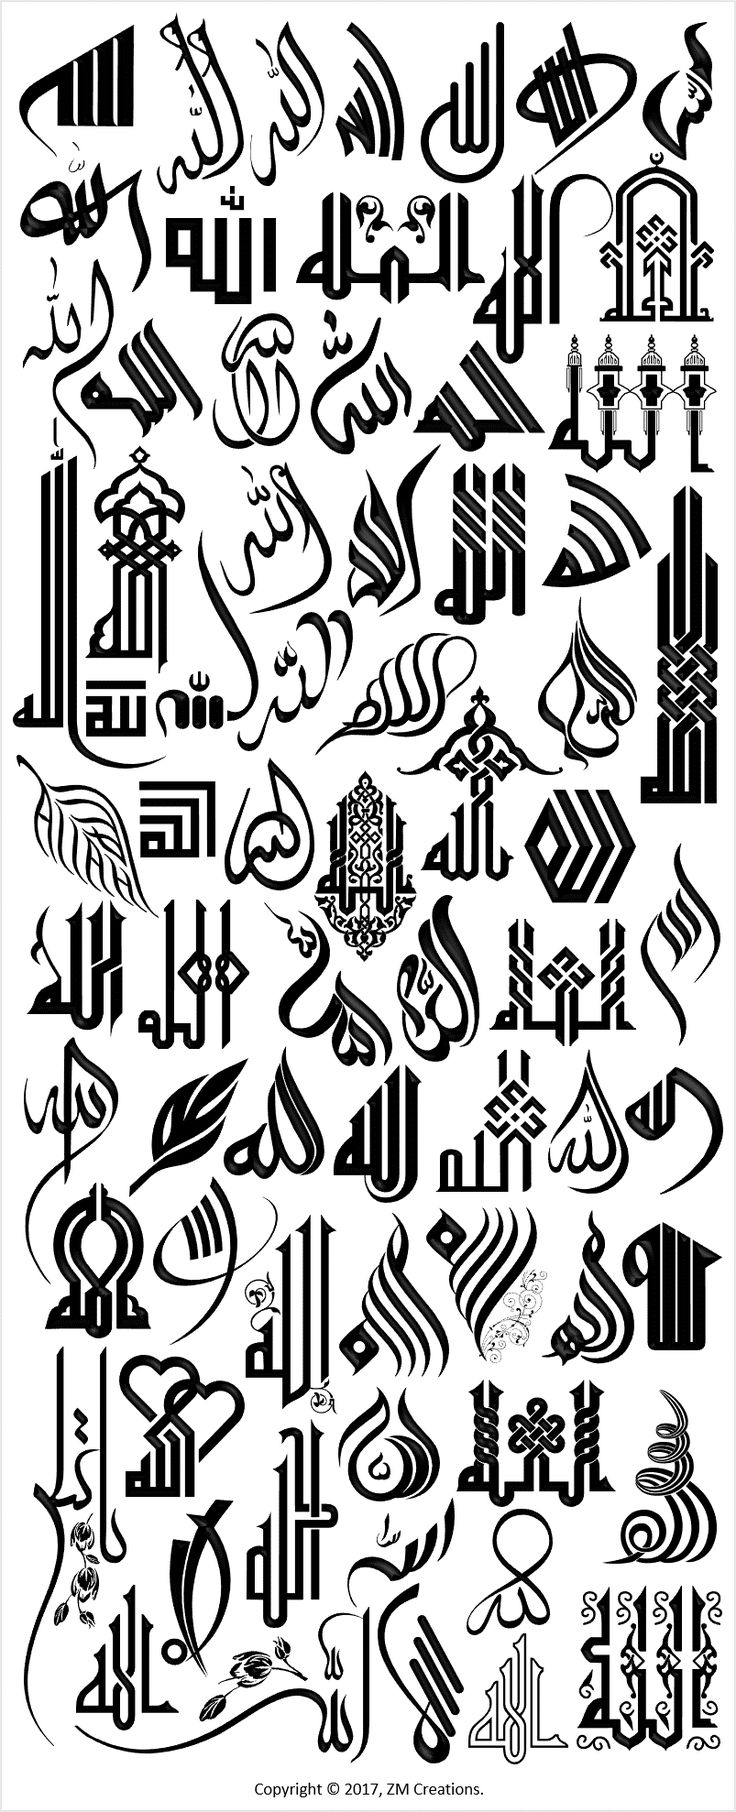 ARABIC CALLIGRAPHY SCRIPTS – Art & Islamic Graphics